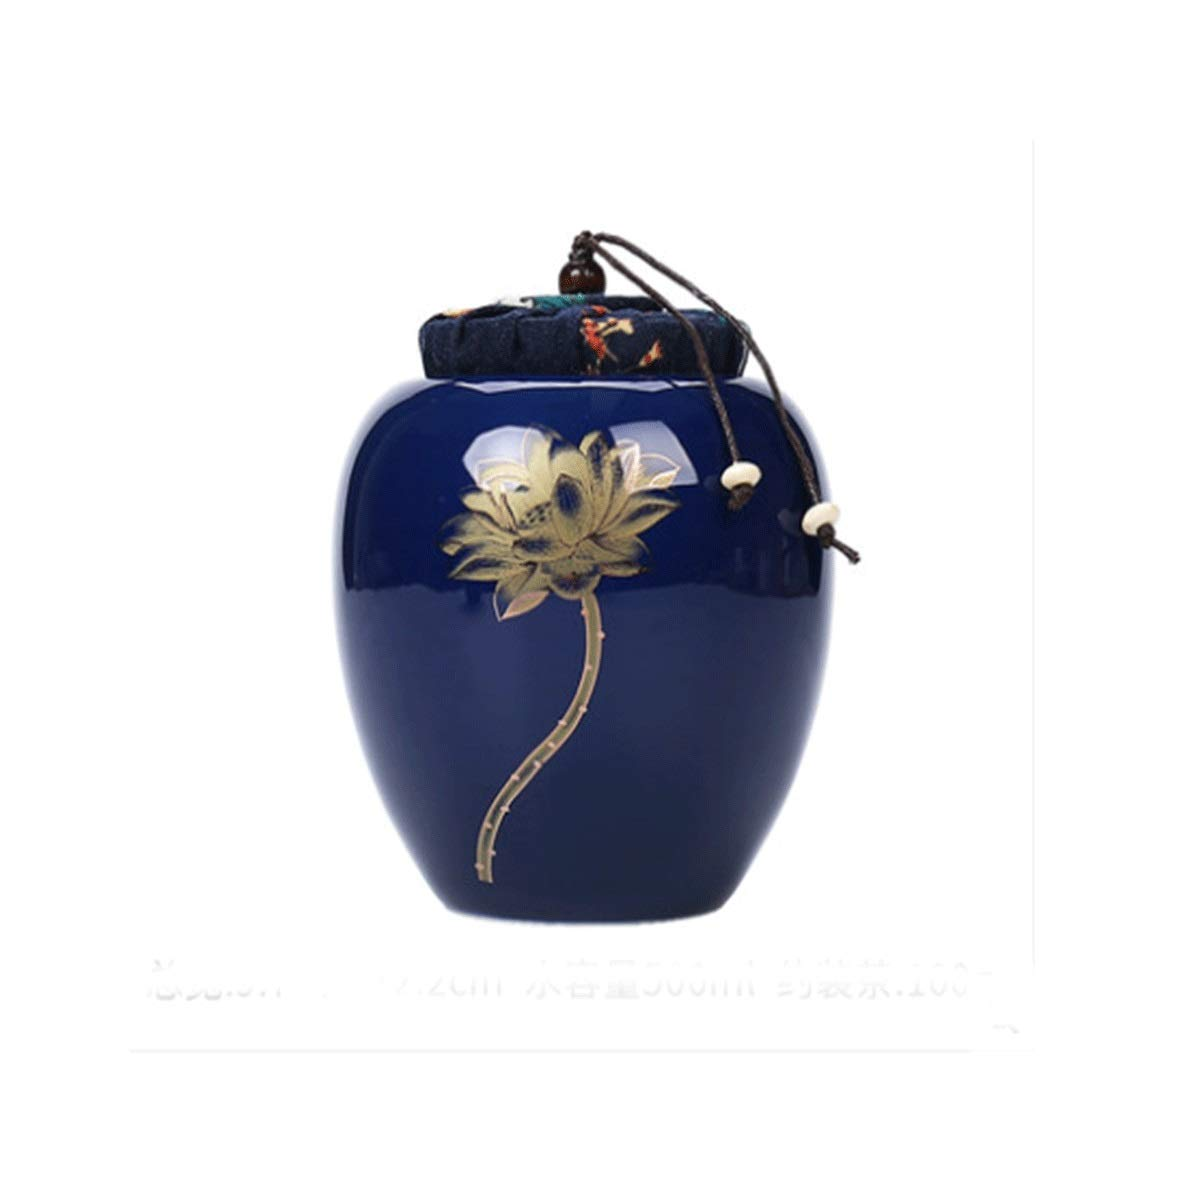 Shengshihuizhong Pet Casket, Pet Urn, Cremation Urns for Pets, Functional Urn, Ceramic Sealed, Moisture Proof, Keepsake Box for Dogs and Cats, urns, Available in a Variety of Styles The